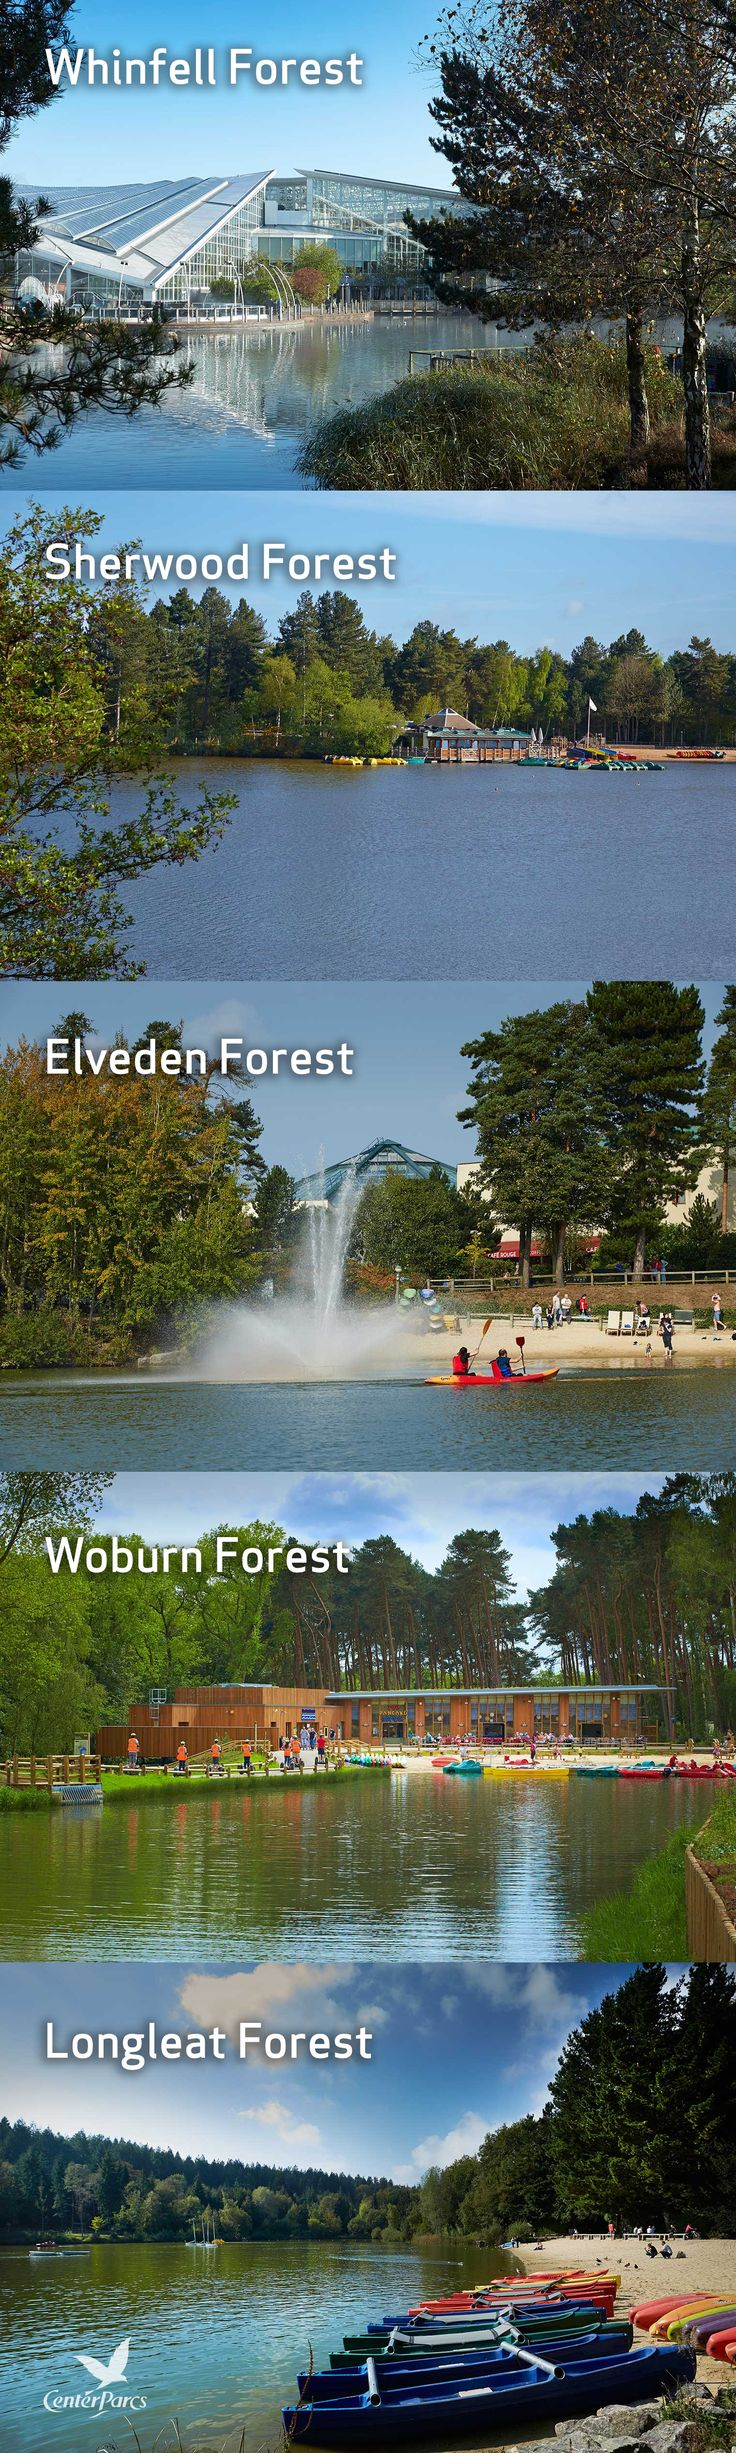 All five of our stunning locations in the UK are set in vast natural forest landscapes with lakes and up to 400 acres of woodland to explore. Enjoy the natural surroundings of the English countryside and escape for a short UK break that all your family can enjoy